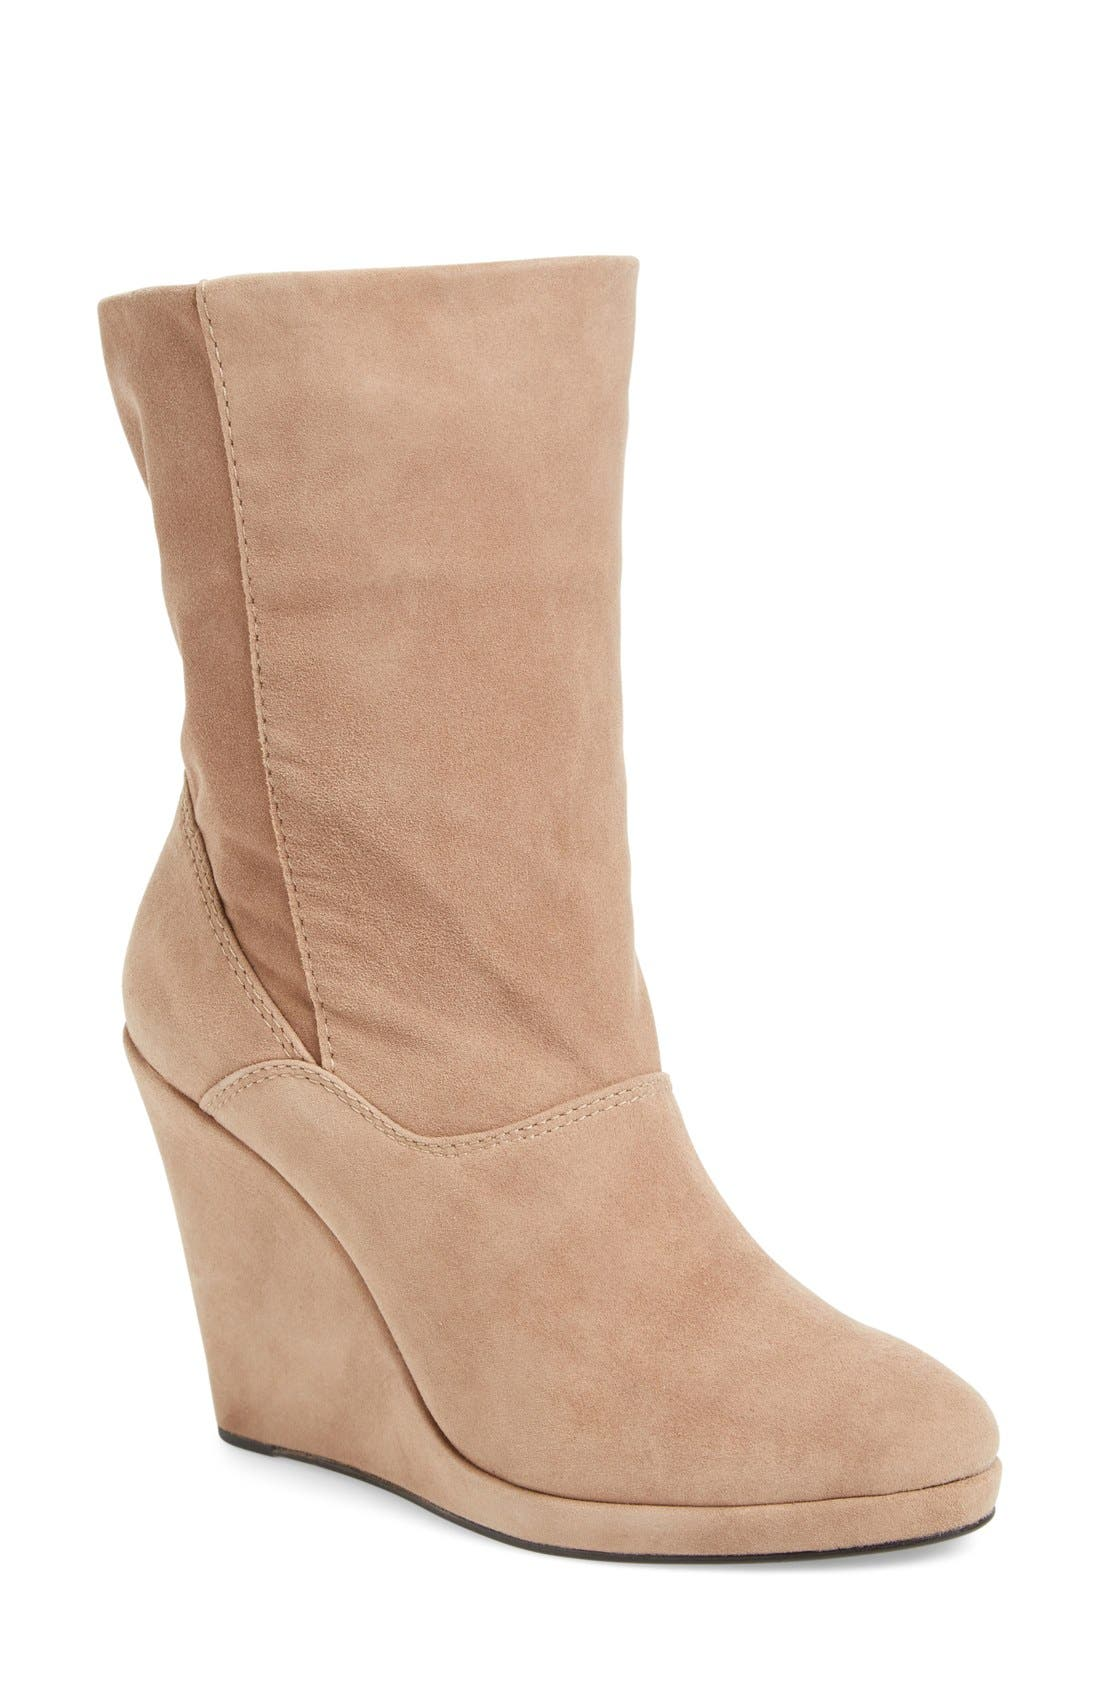 M4D3 Melanie Wedge Boot,                             Main thumbnail 1, color,                             Taupe Leather